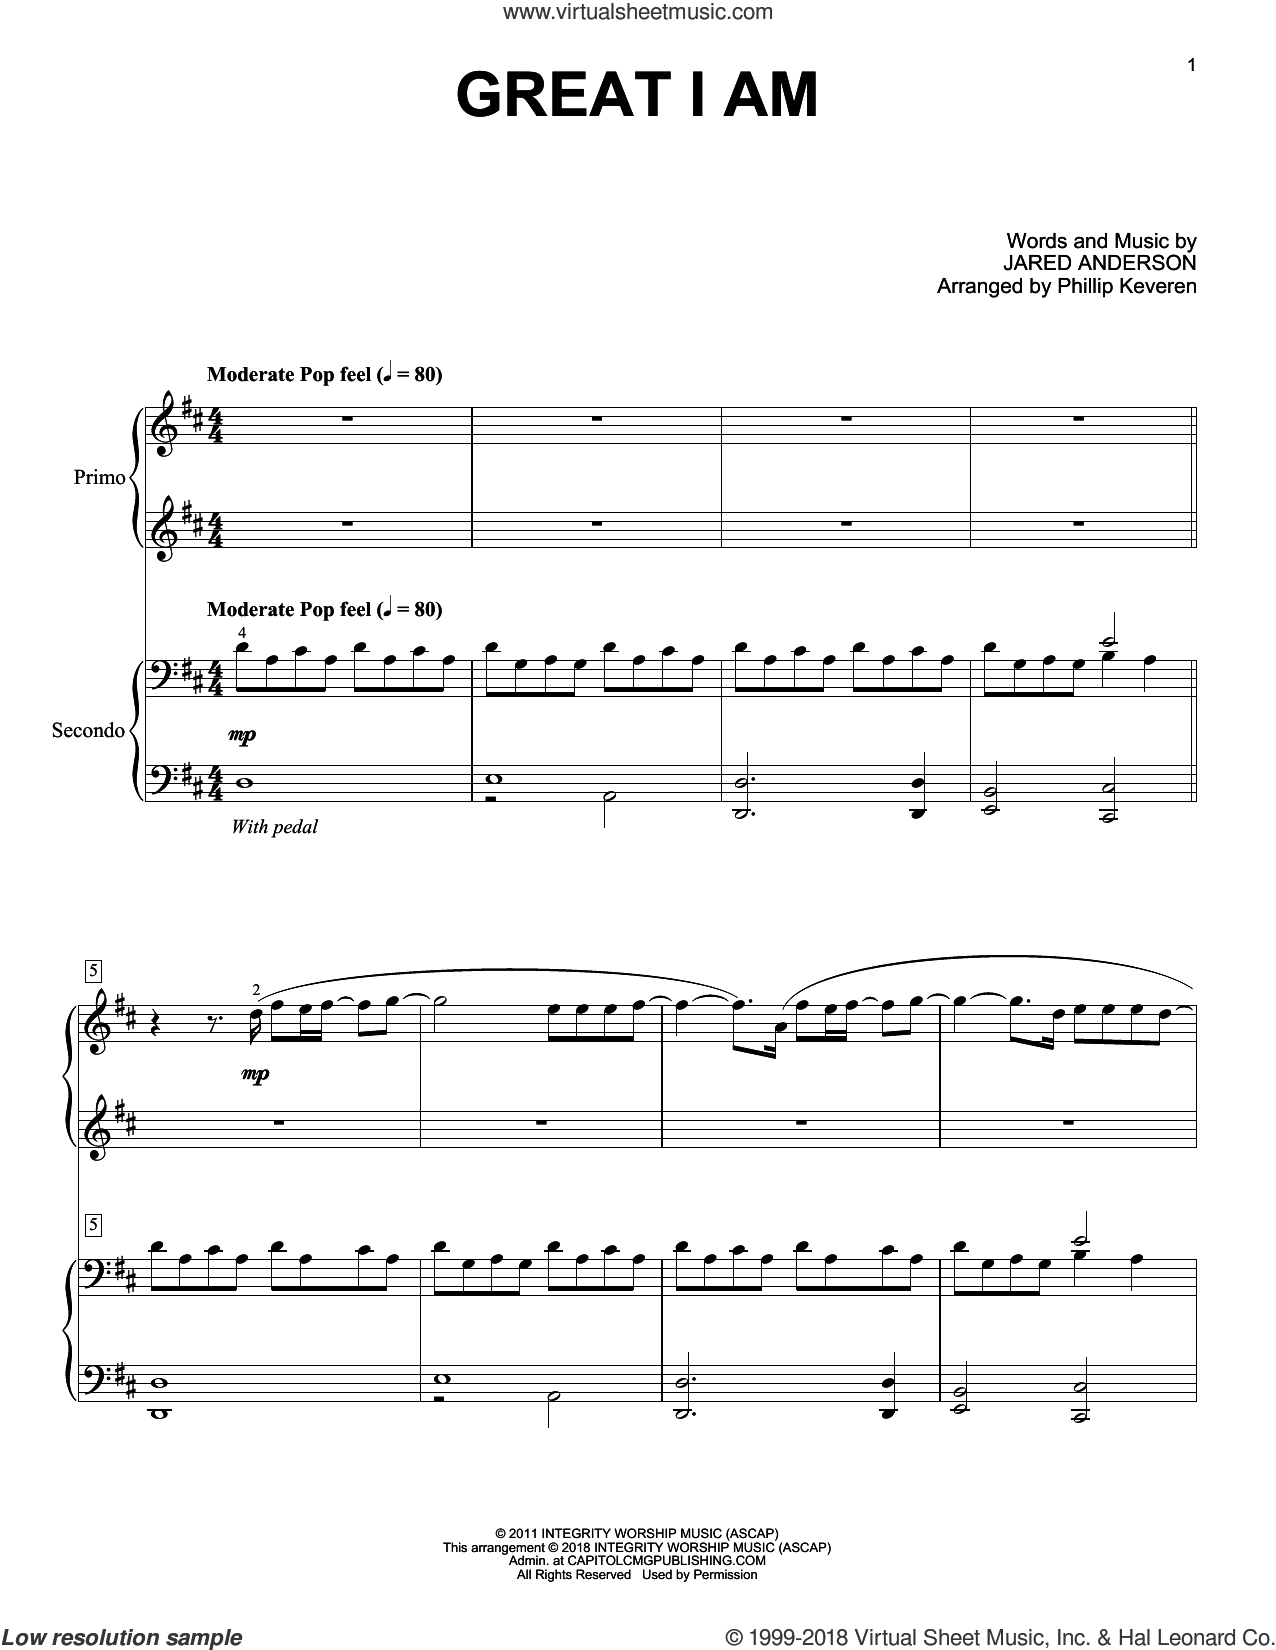 Great I Am sheet music for piano four hands by Jared Anderson and Phillip Keveren, intermediate skill level